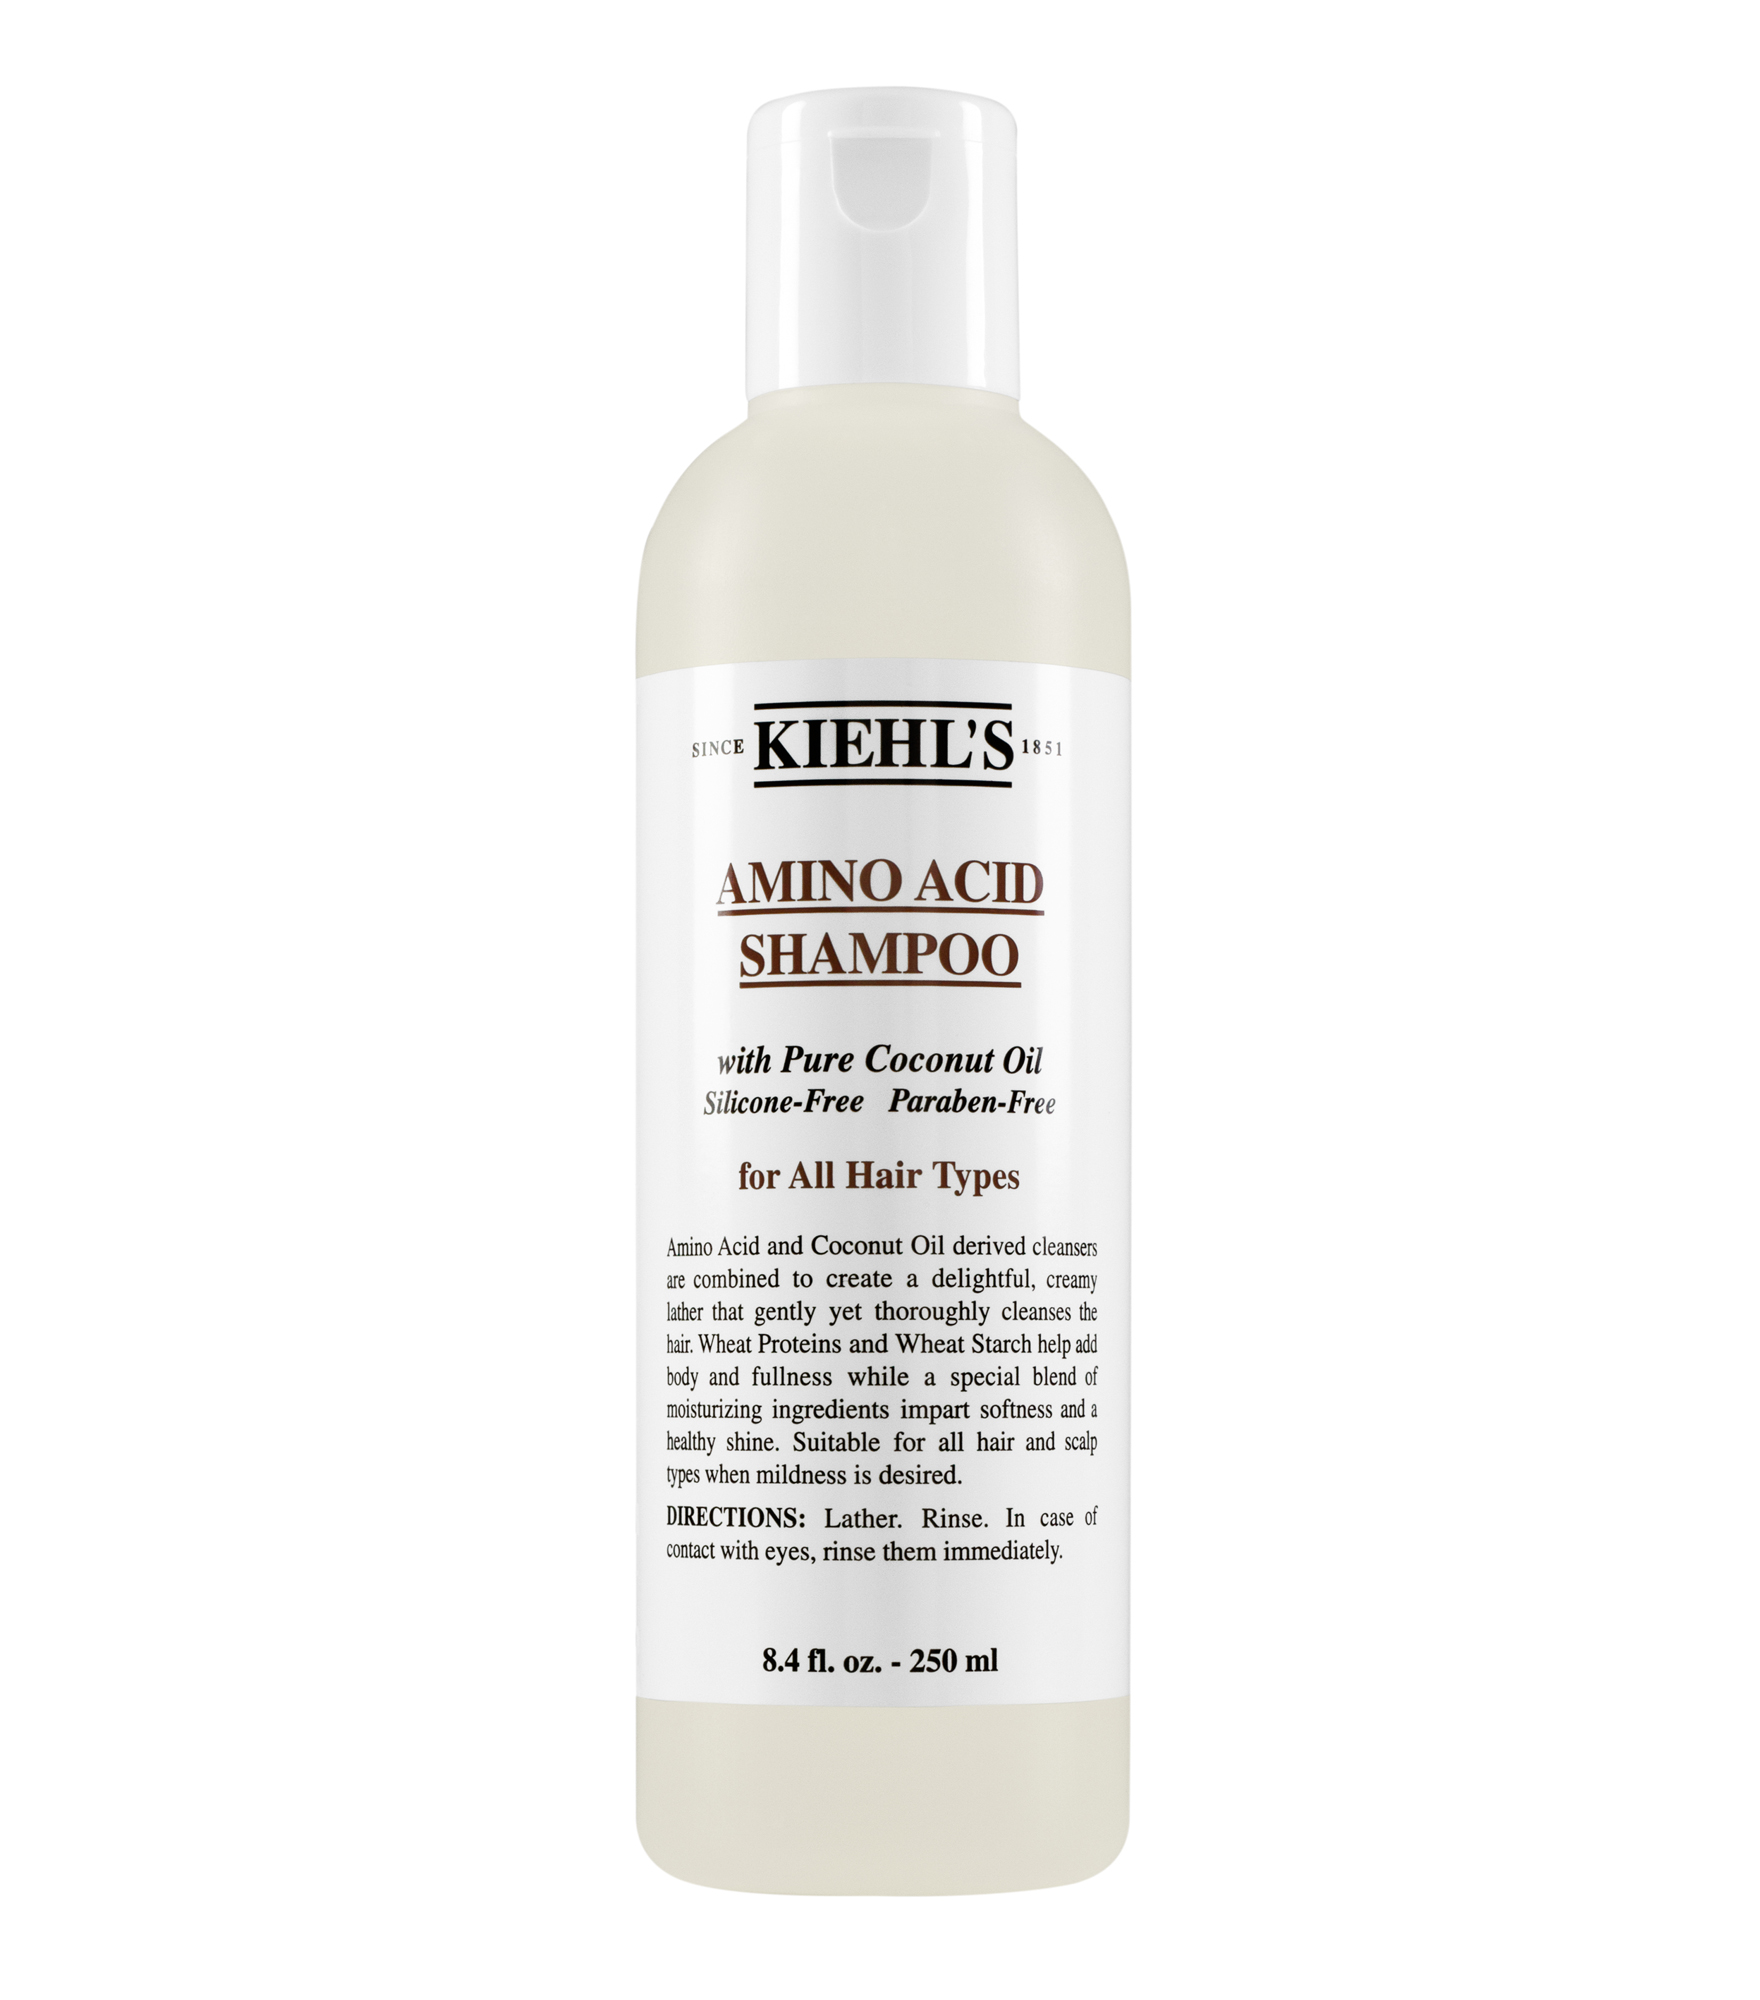 Shampoo Tsinovit: reviews, instructions for use 7